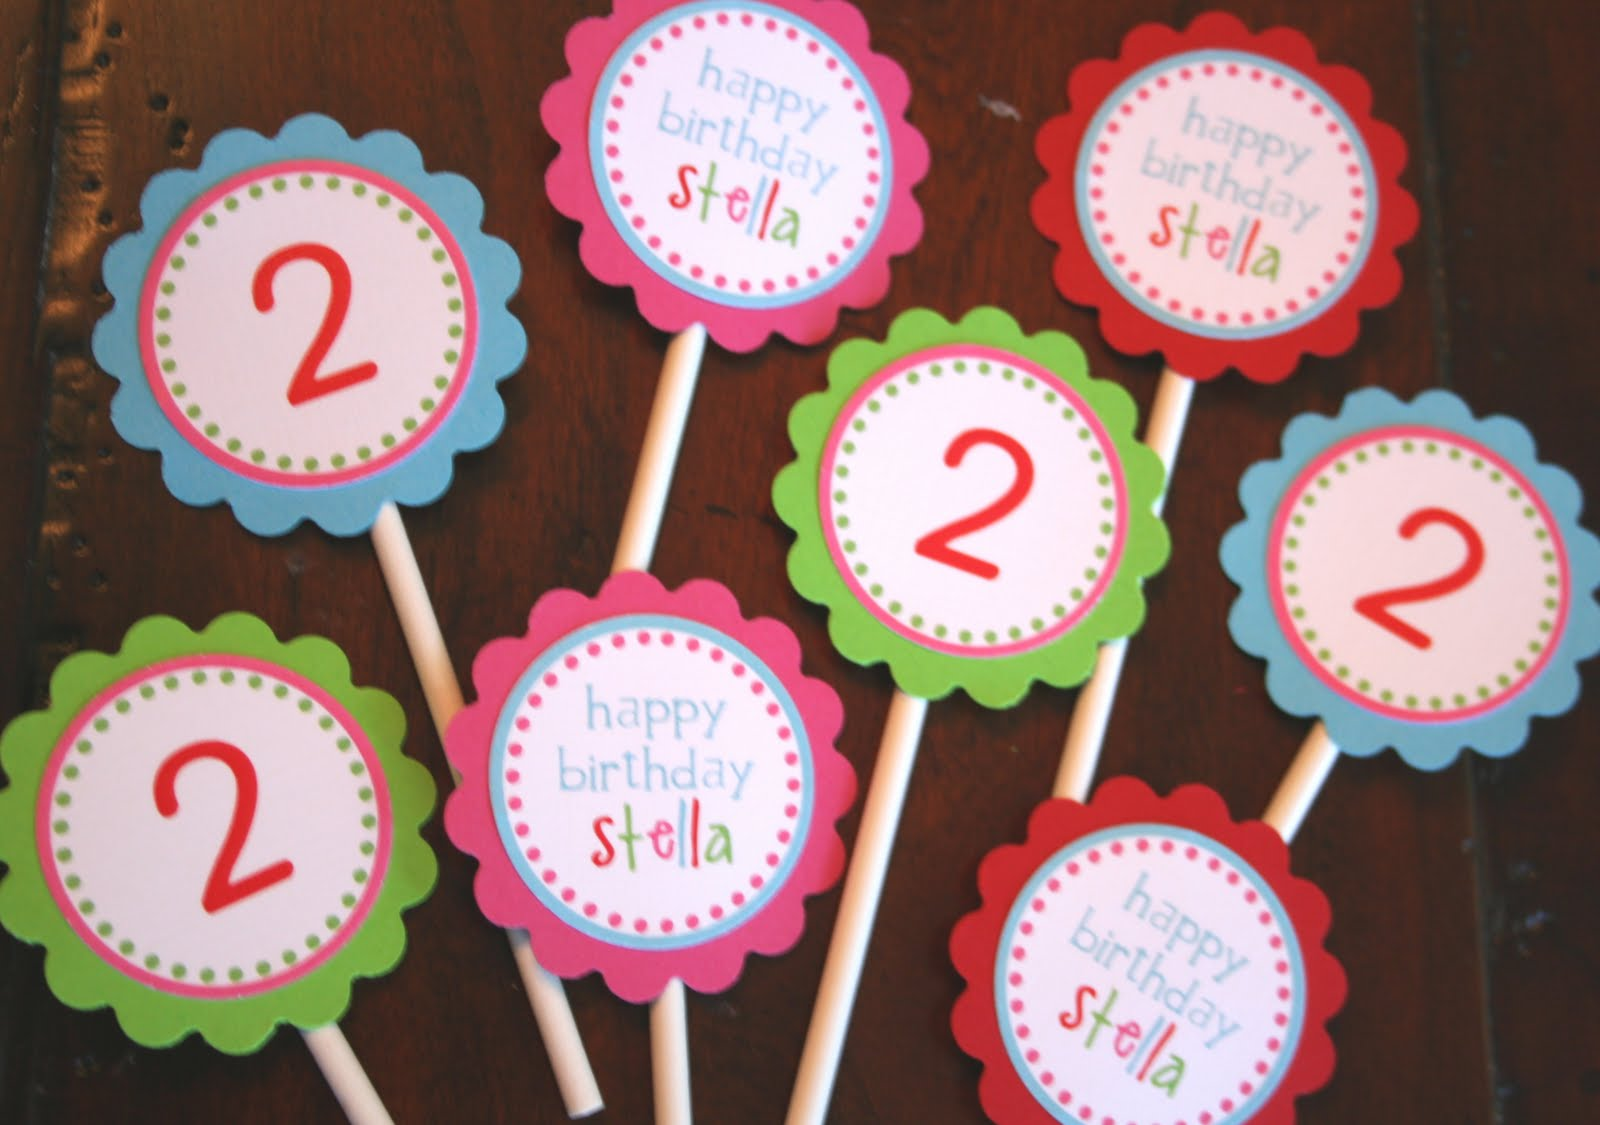 25th Birthday Party Theme Ideas For Her The Audi Car